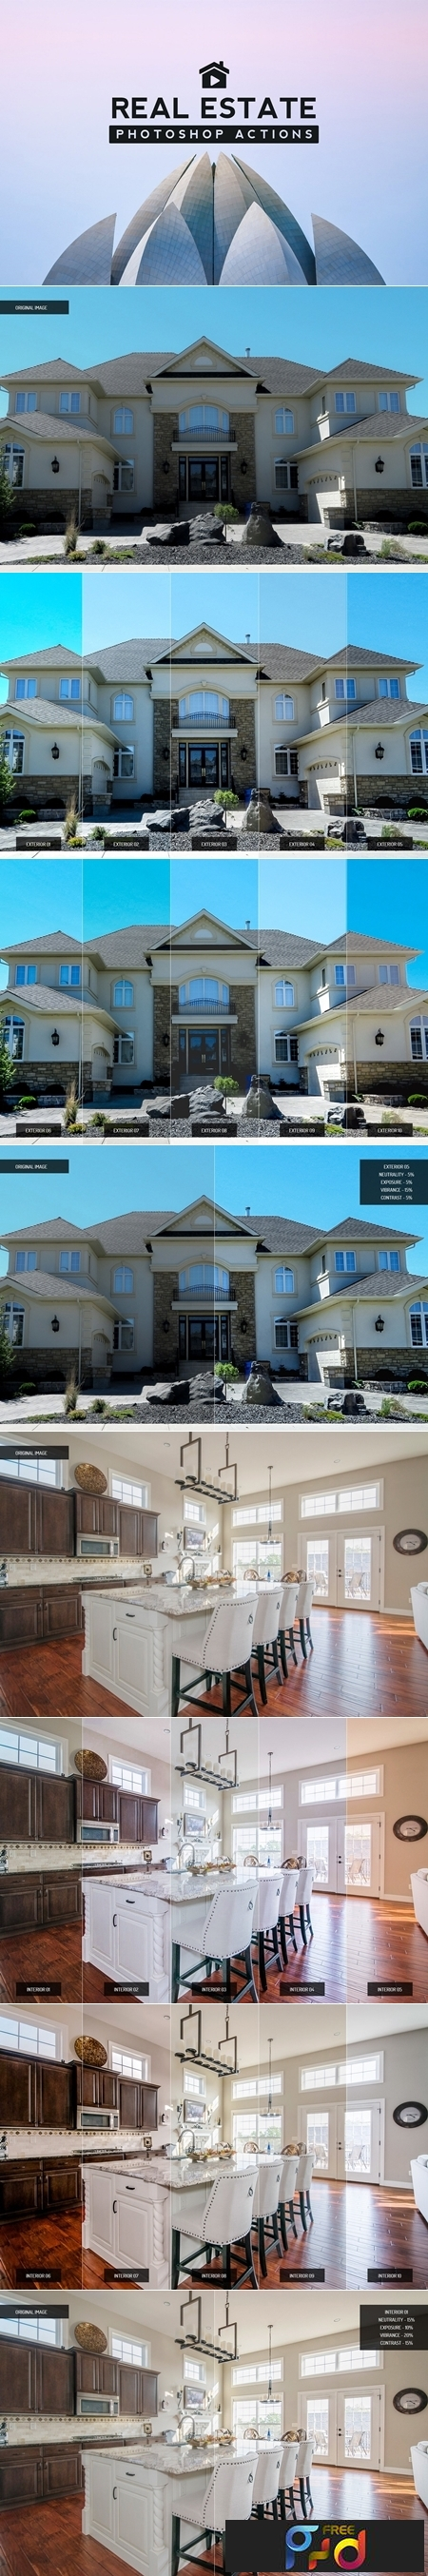 Real Estate Photoshop Actions 3477163 1